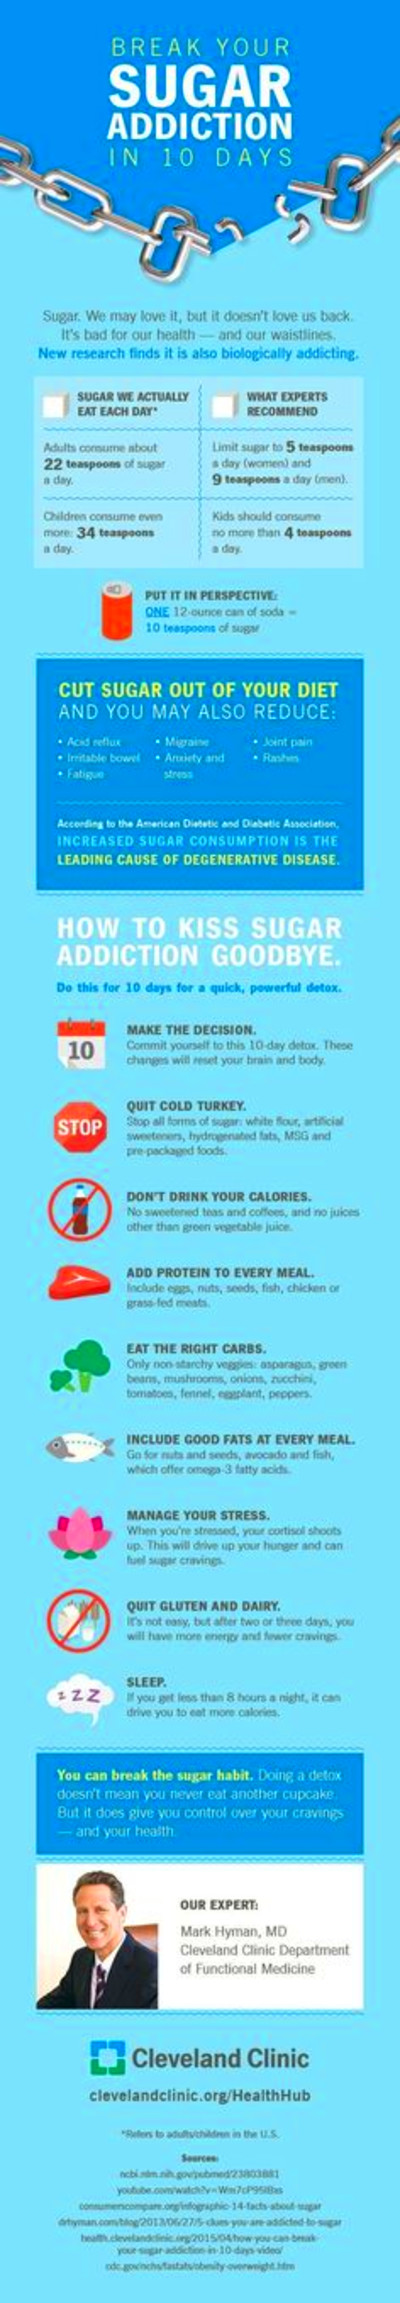 1000+ images about Sugar Addiction on Pinterest | Addiction, The sugar ...